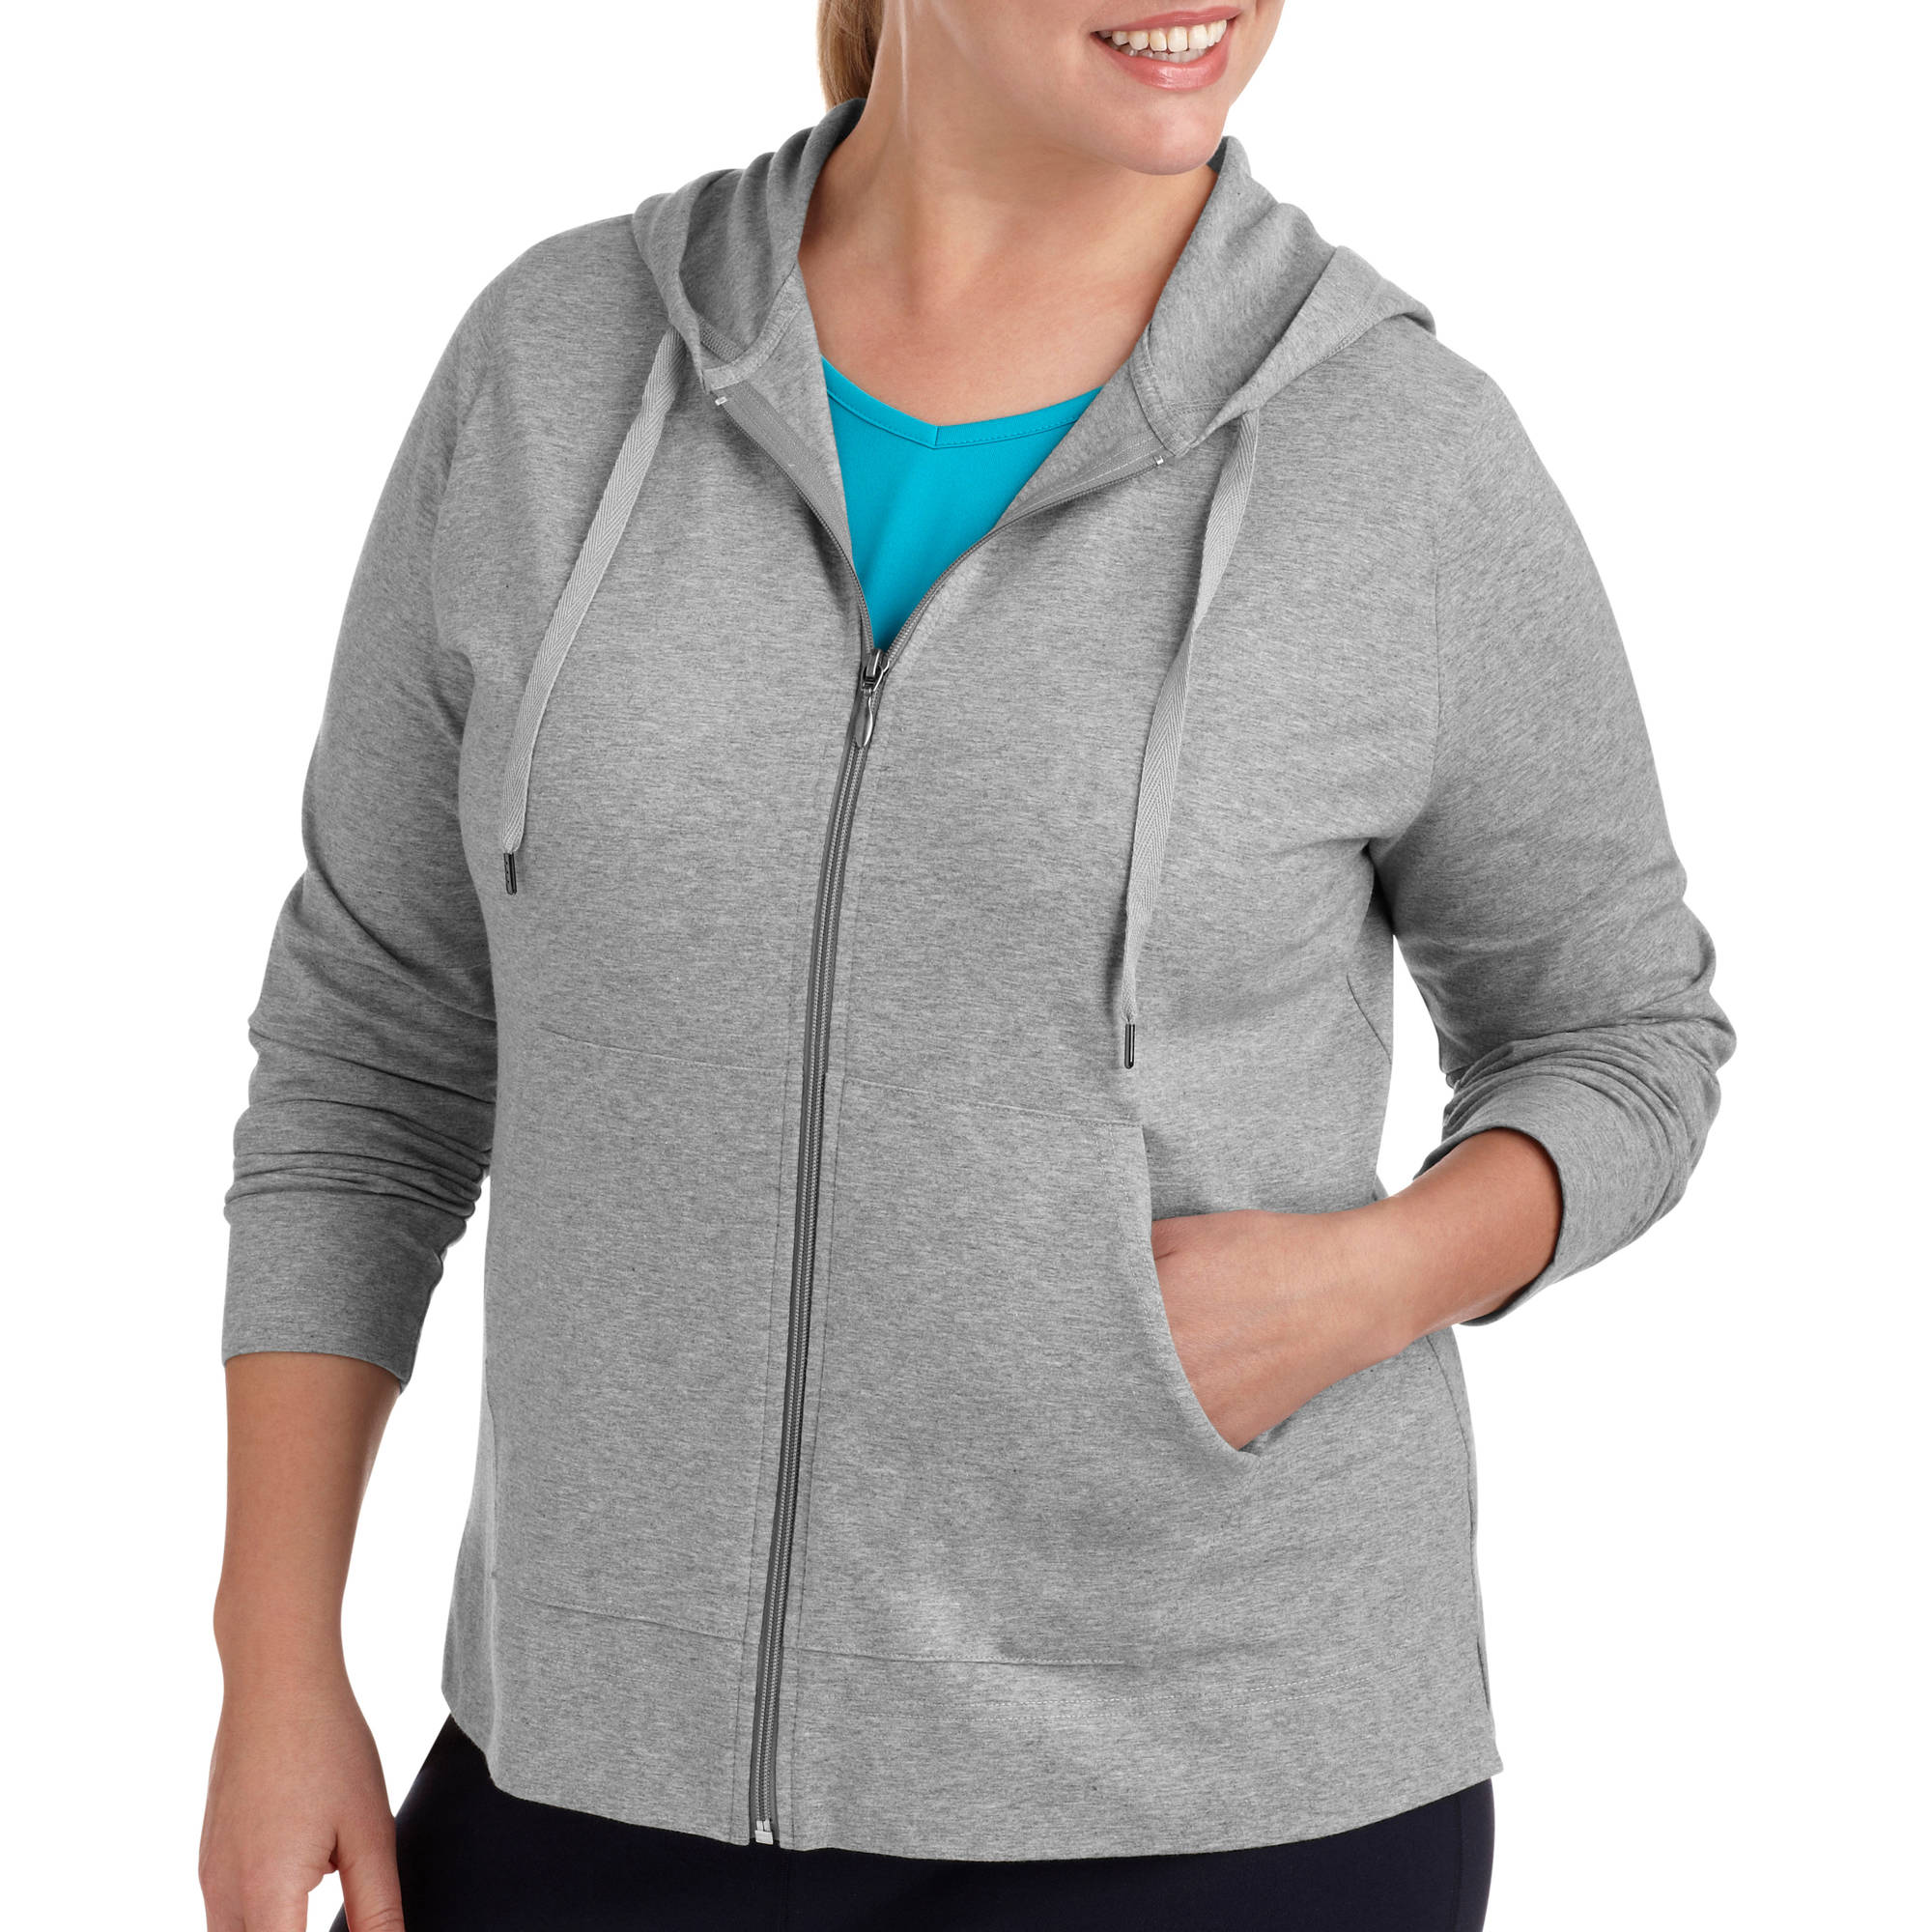 06b37ced6d2 Danskin Now - Womens Plus Size Dri More Zip Up Hoodie - Walmart.com